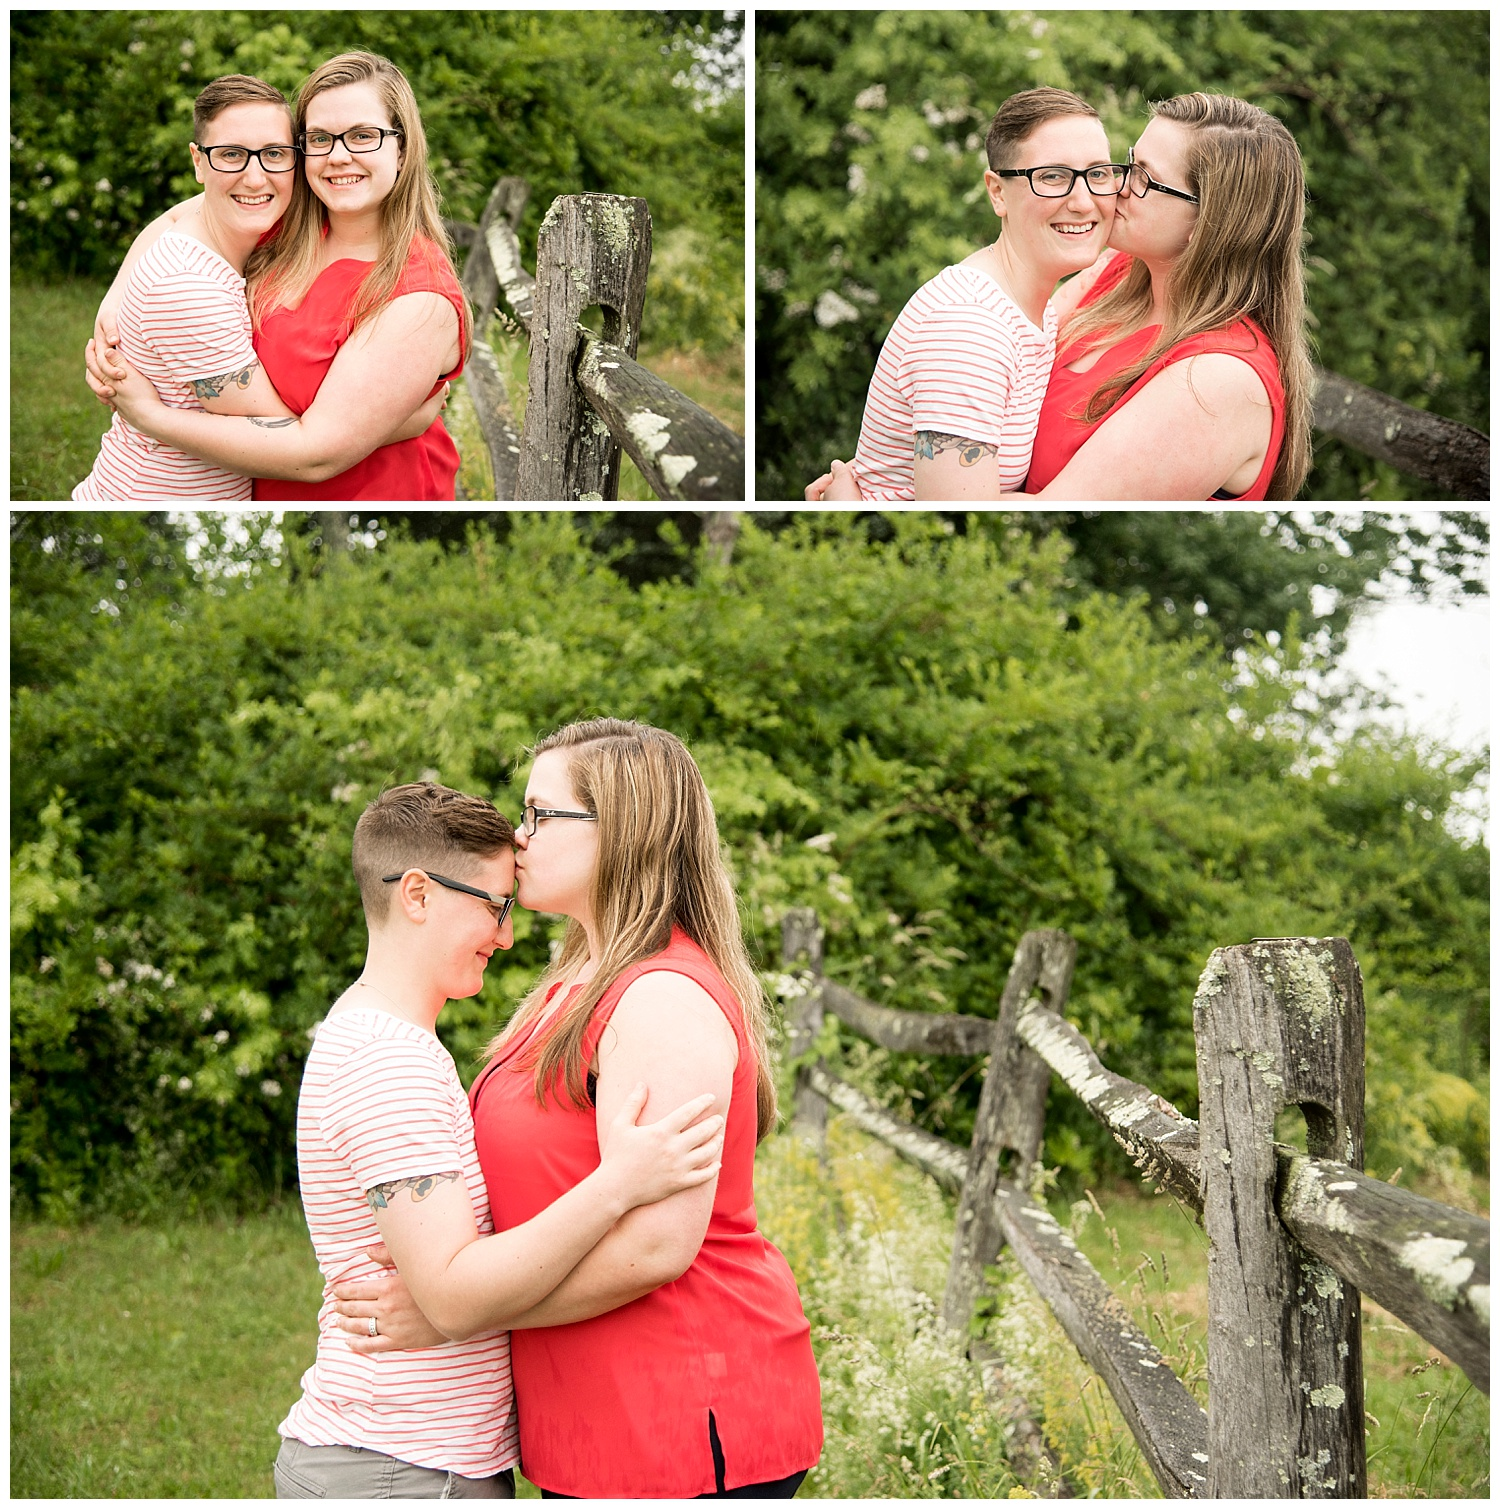 Hartford_Connecticut_Engagement_Photographer_Farm_Wedding_Photography_Countryside_LGBQT_Weddings_Photos_007.jpg